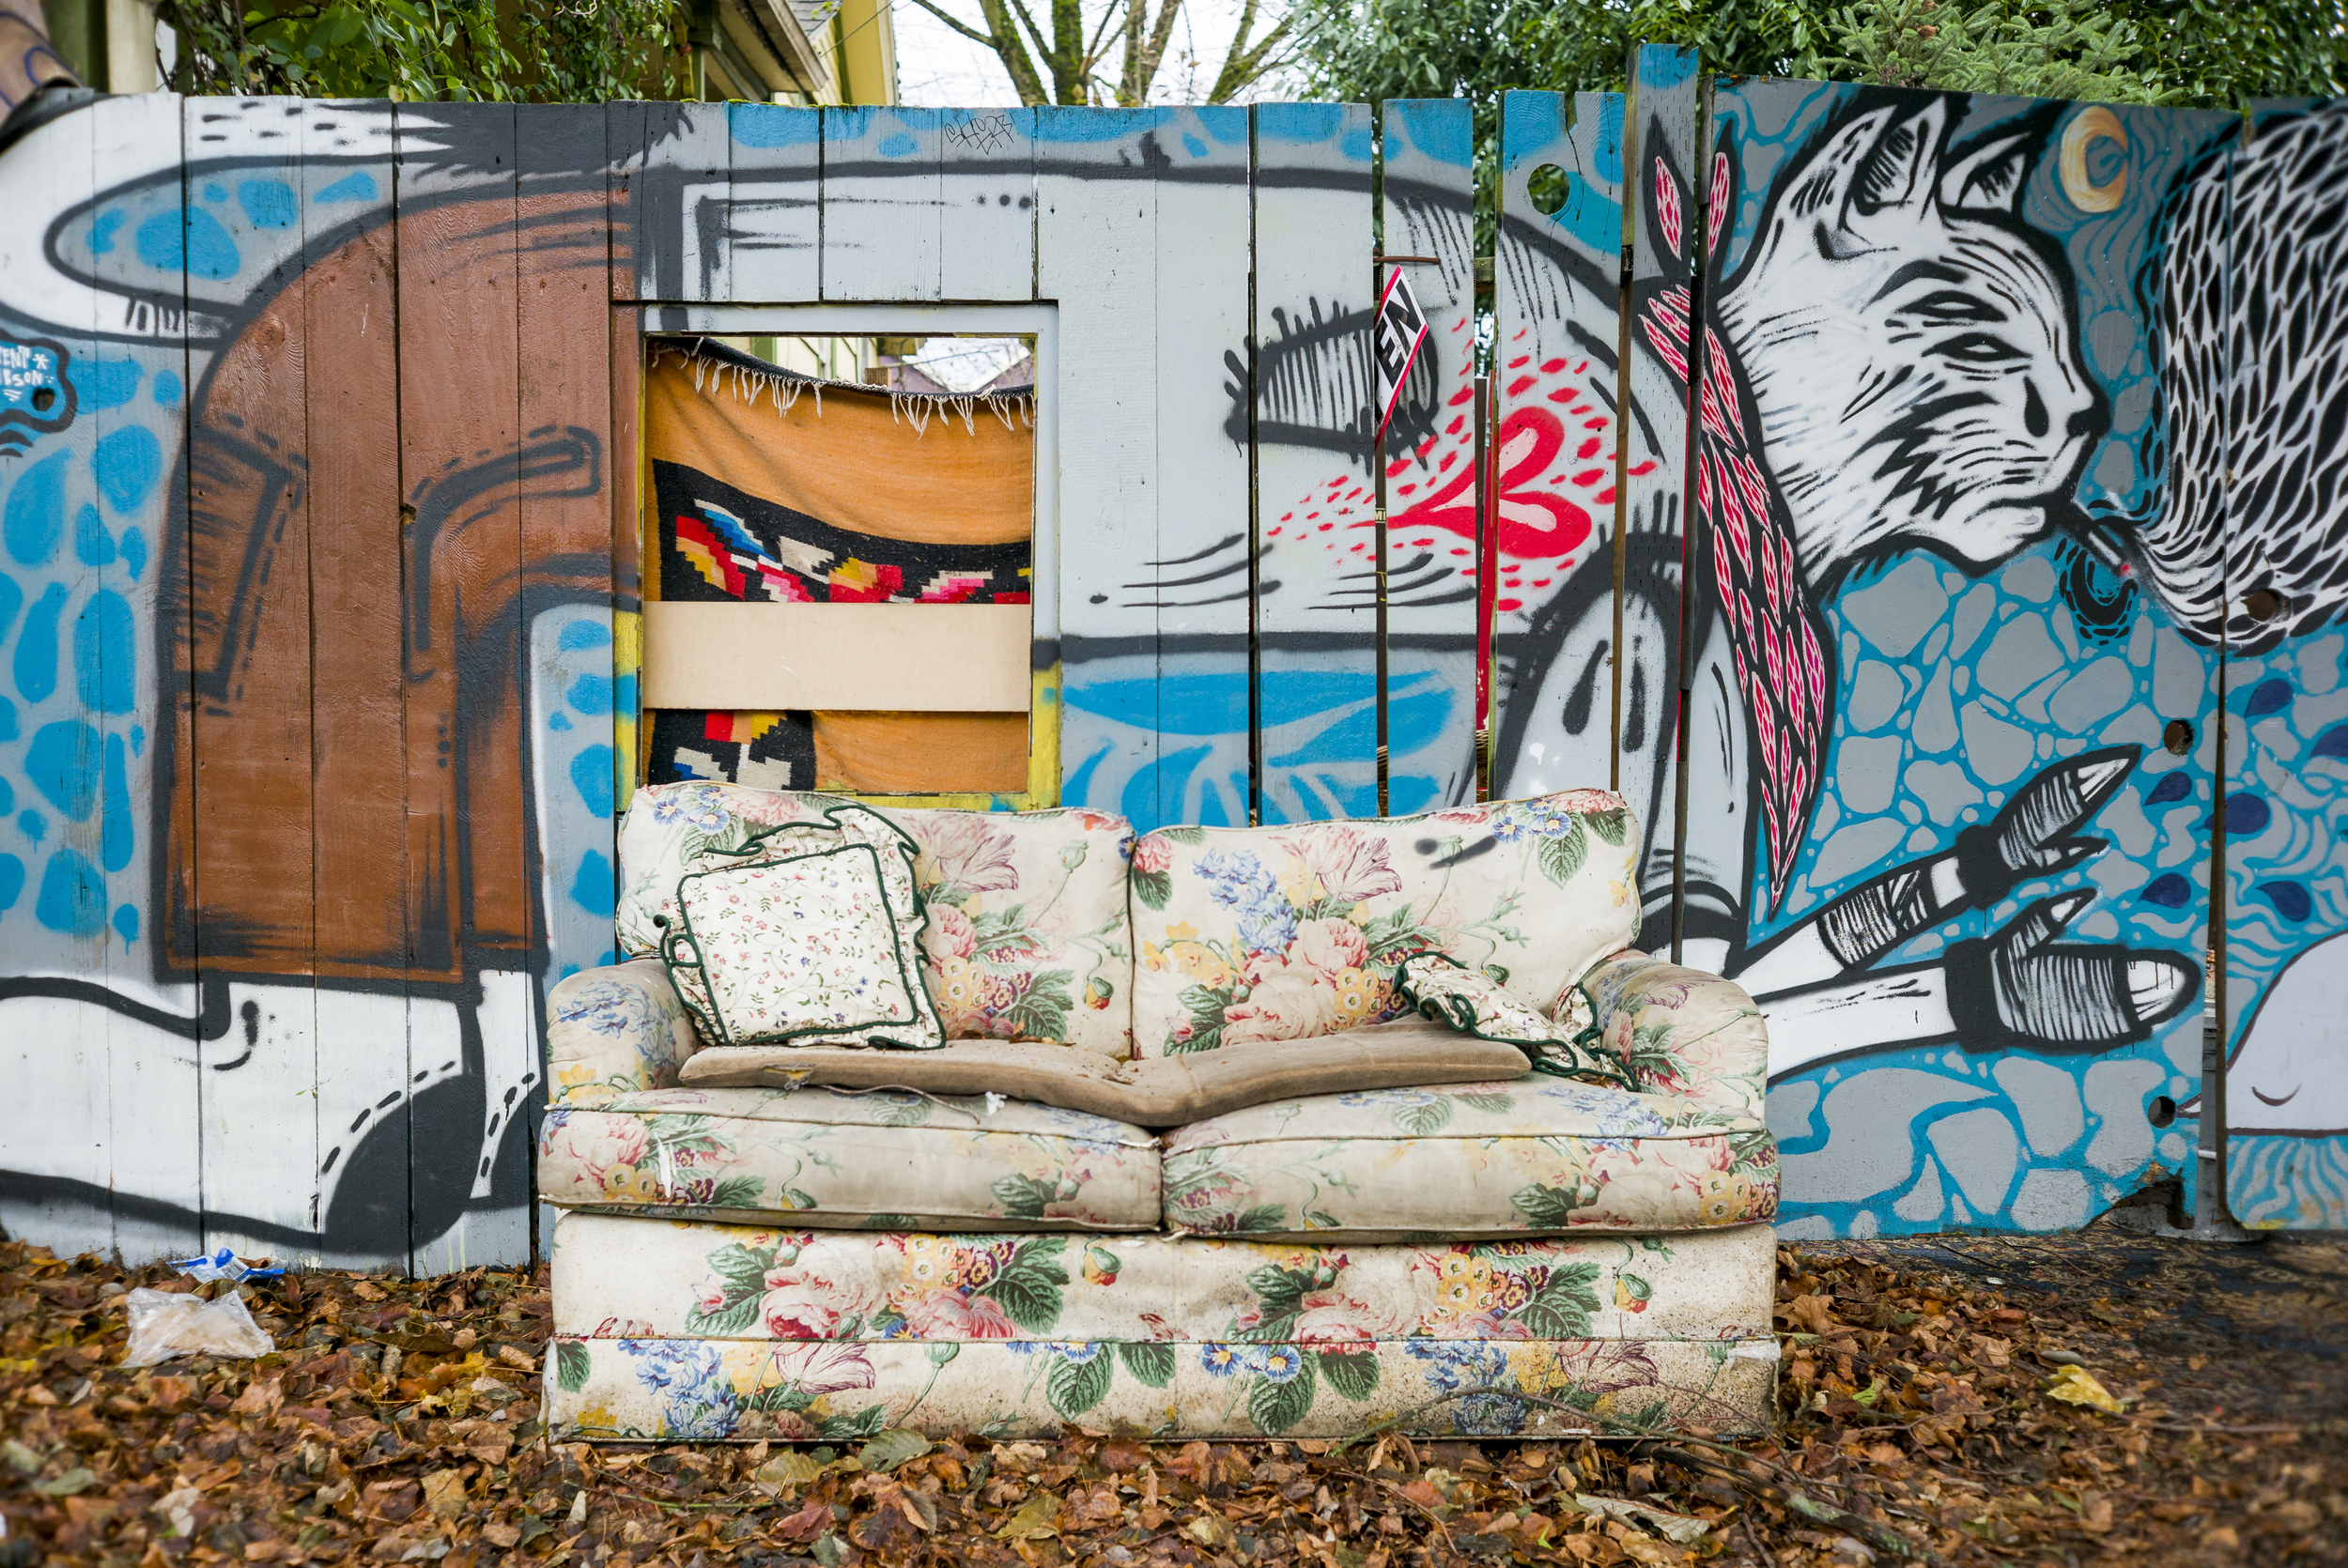 PORTLAND, OR - DECEMBER 5, 2014: Design abounds on Historic Mississippi Avenue in North Portland including at the Art Collective called 2k14 where artists Trent Gibson and Santi C. created the mural pictured on their fence. CREDIT: Leah Nash for The New York Times